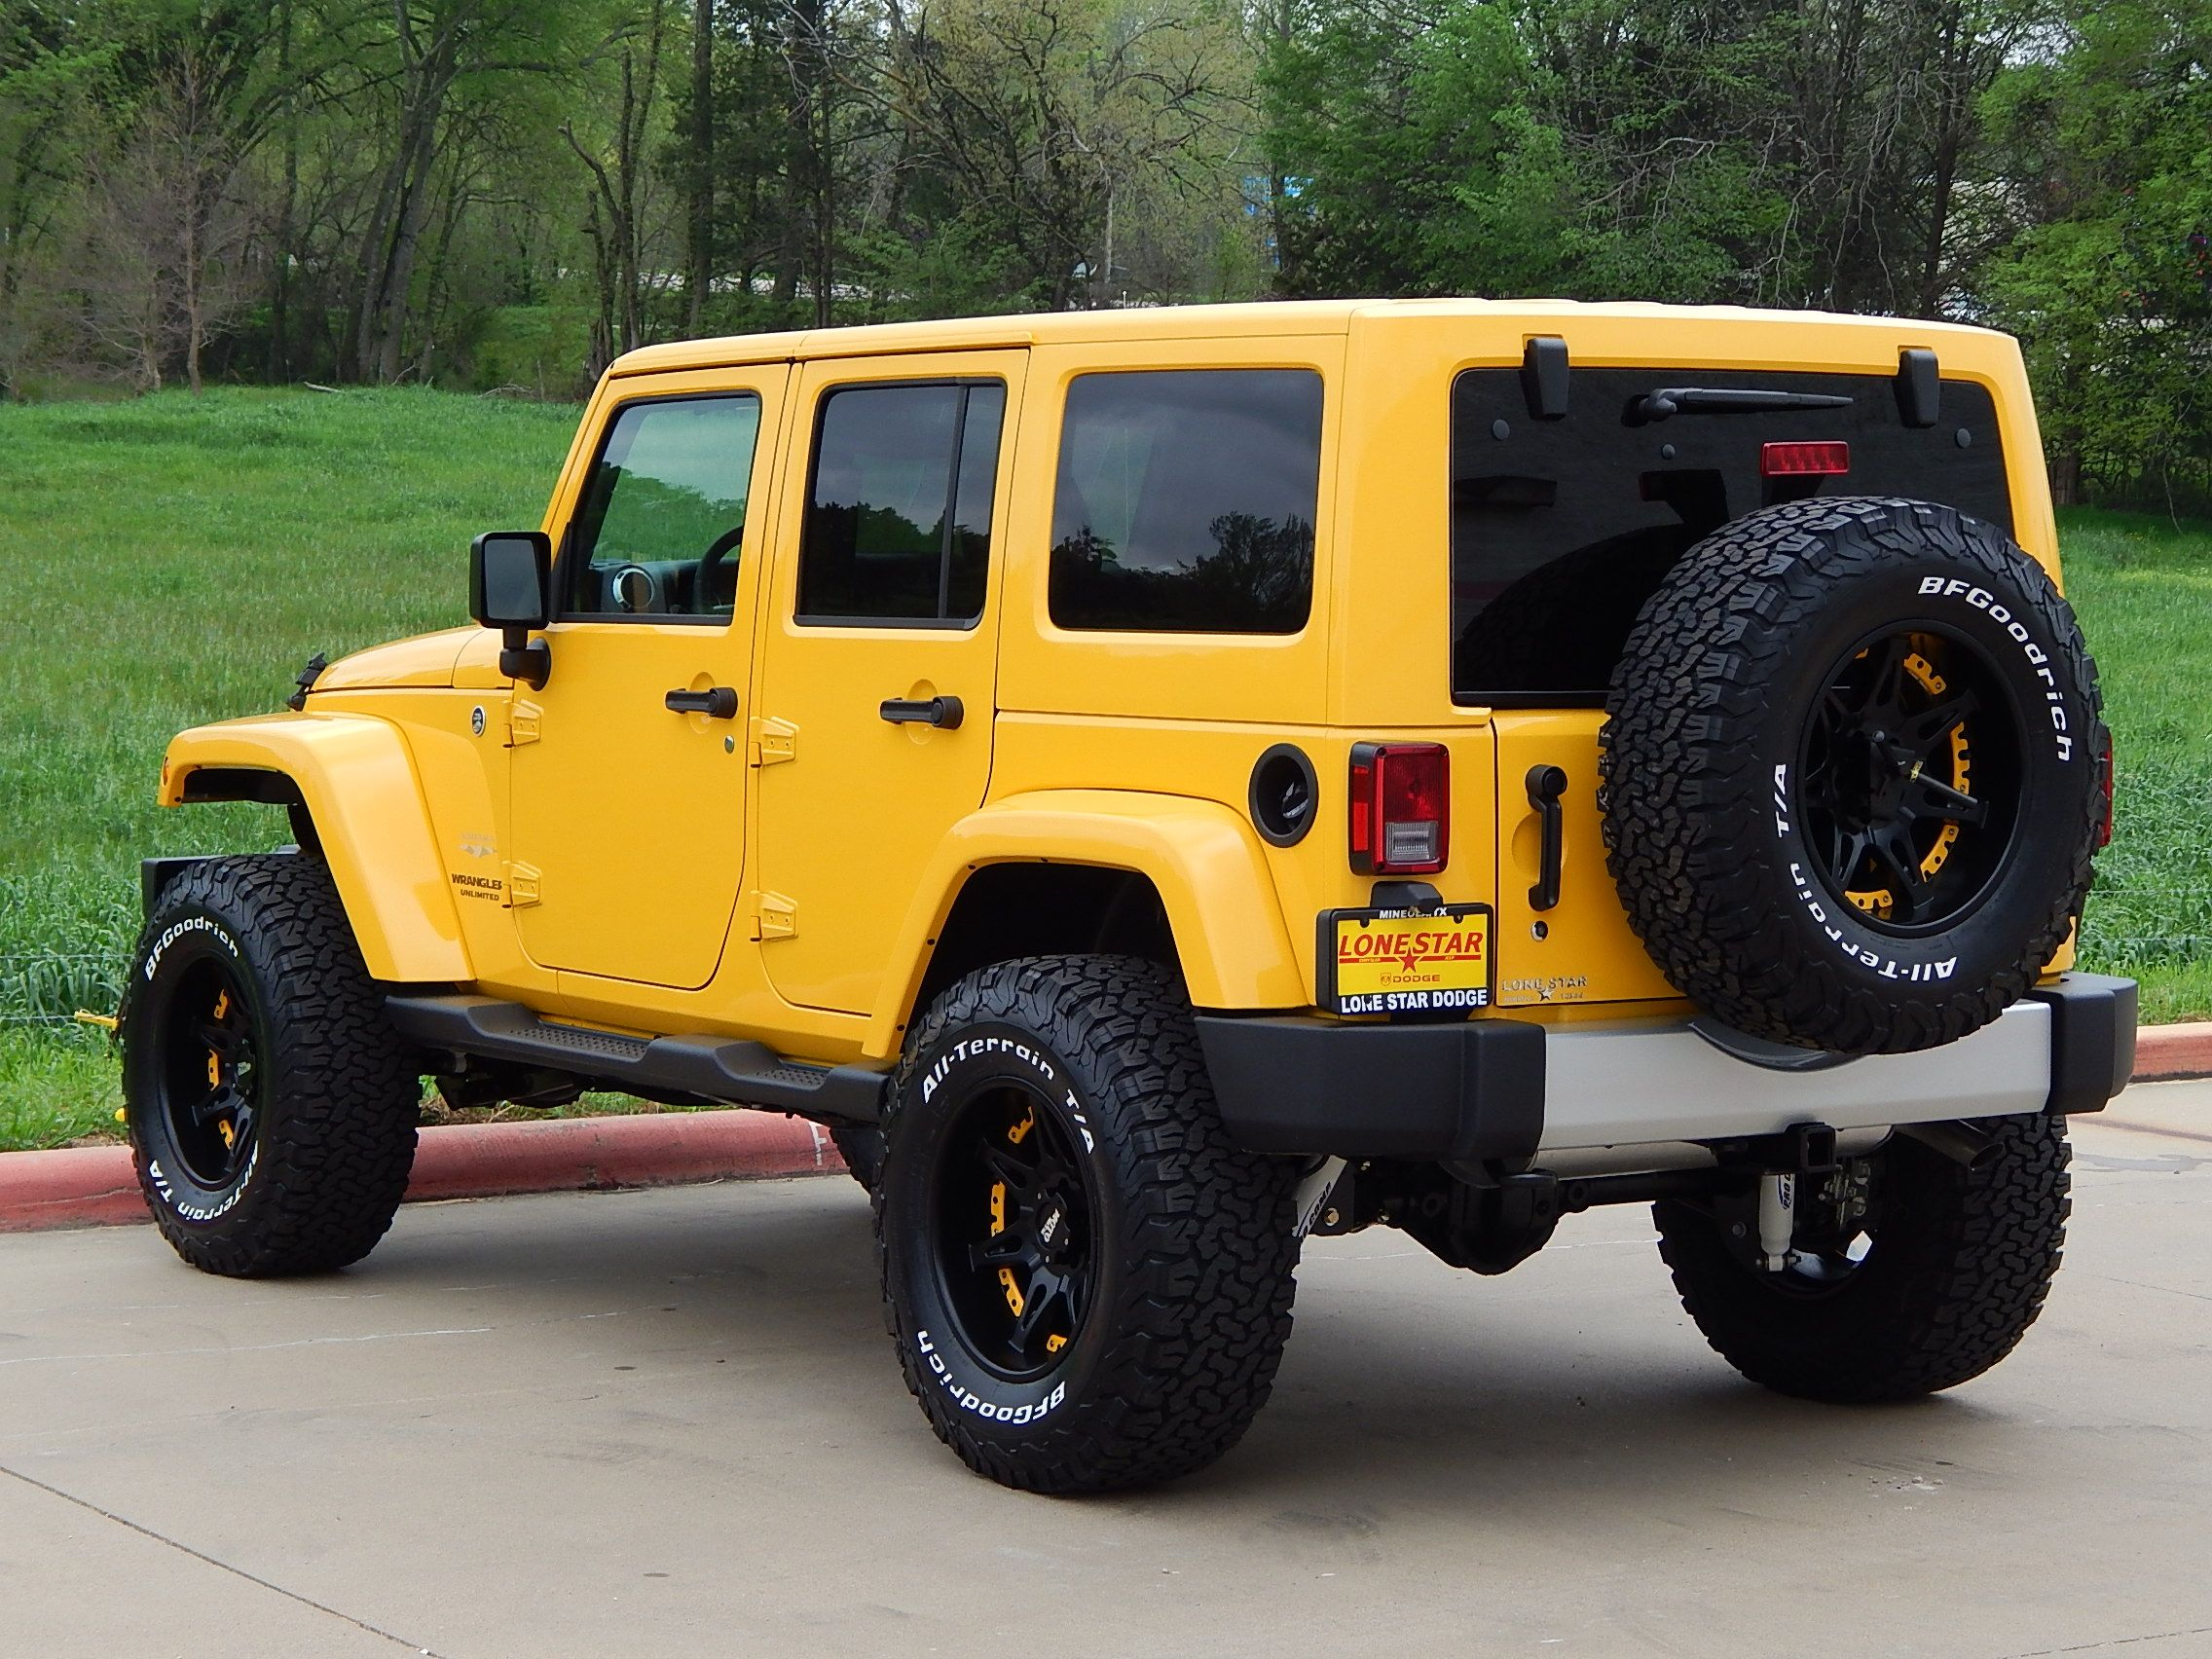 2015 Jeep Wrangler Unlimited Sahara In Baja Yellow Equipped With